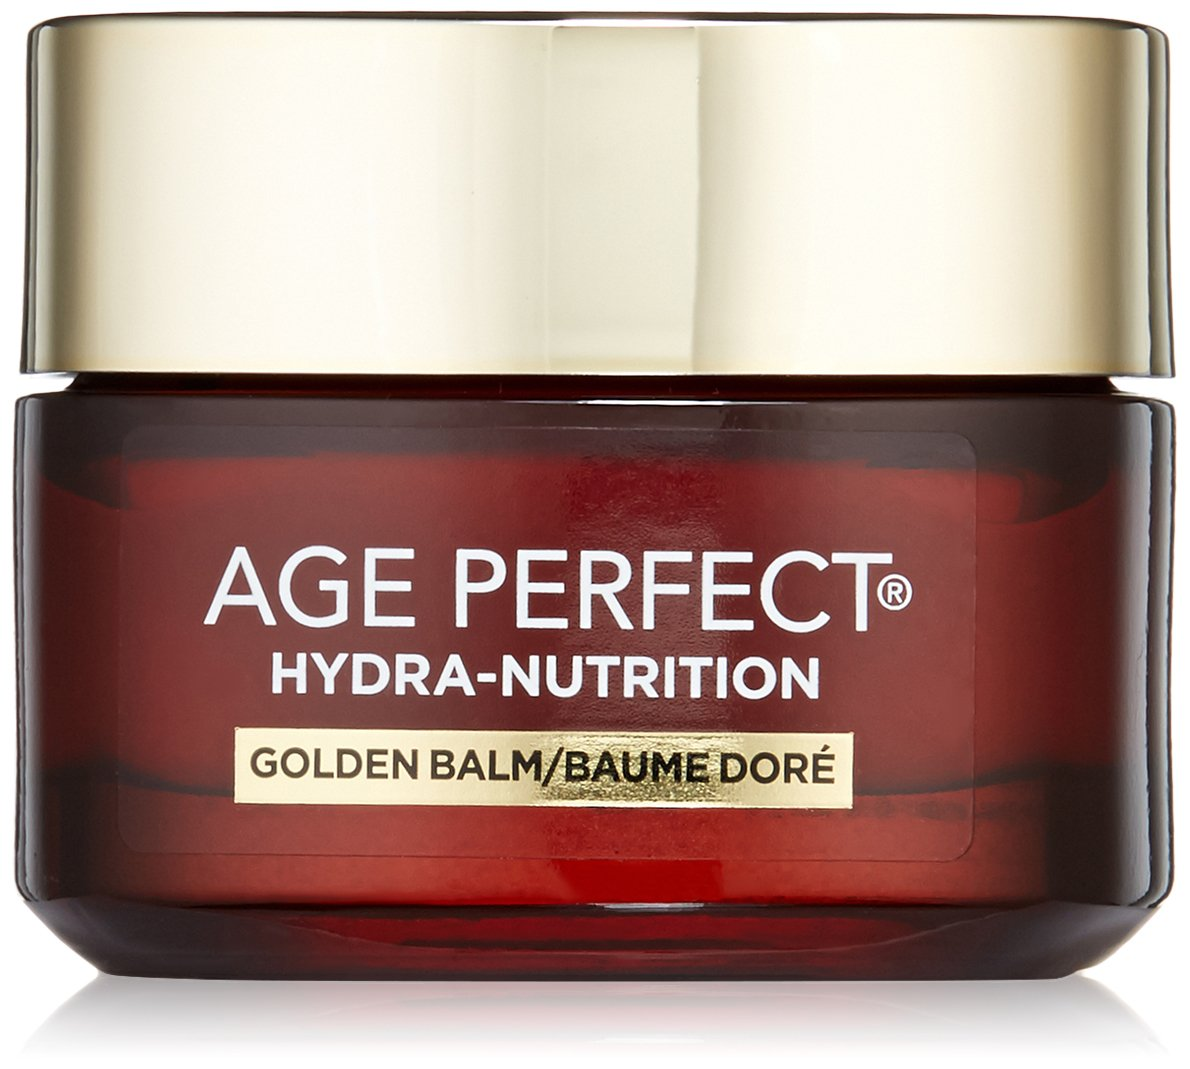 L'Oreal Paris Age Perfect Hydra-Nutrition Day Night Face Cream Moisturizer, with Calcium + Precious Oils, Very Dry Skin, Anti-Aging, 50 ML L' Oreal Paris K103-53